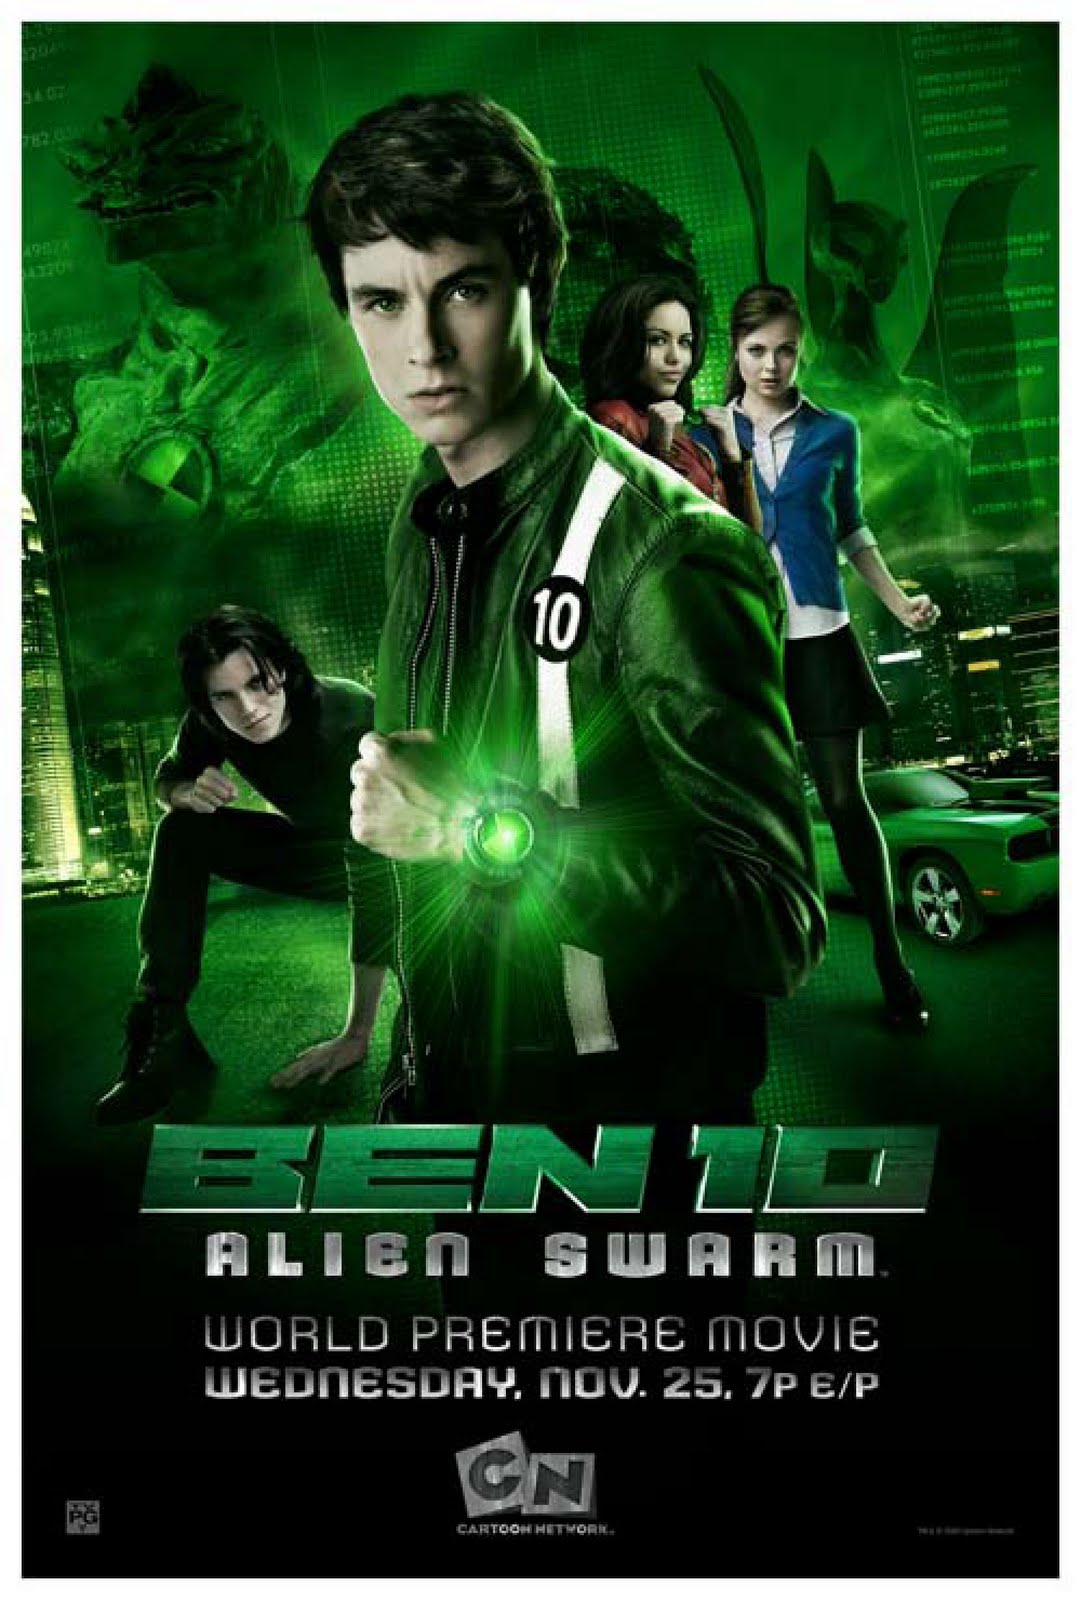 Ben 10 Alien Swarm 2009 1080p BluRay x264-aAF | 6.5 GB |